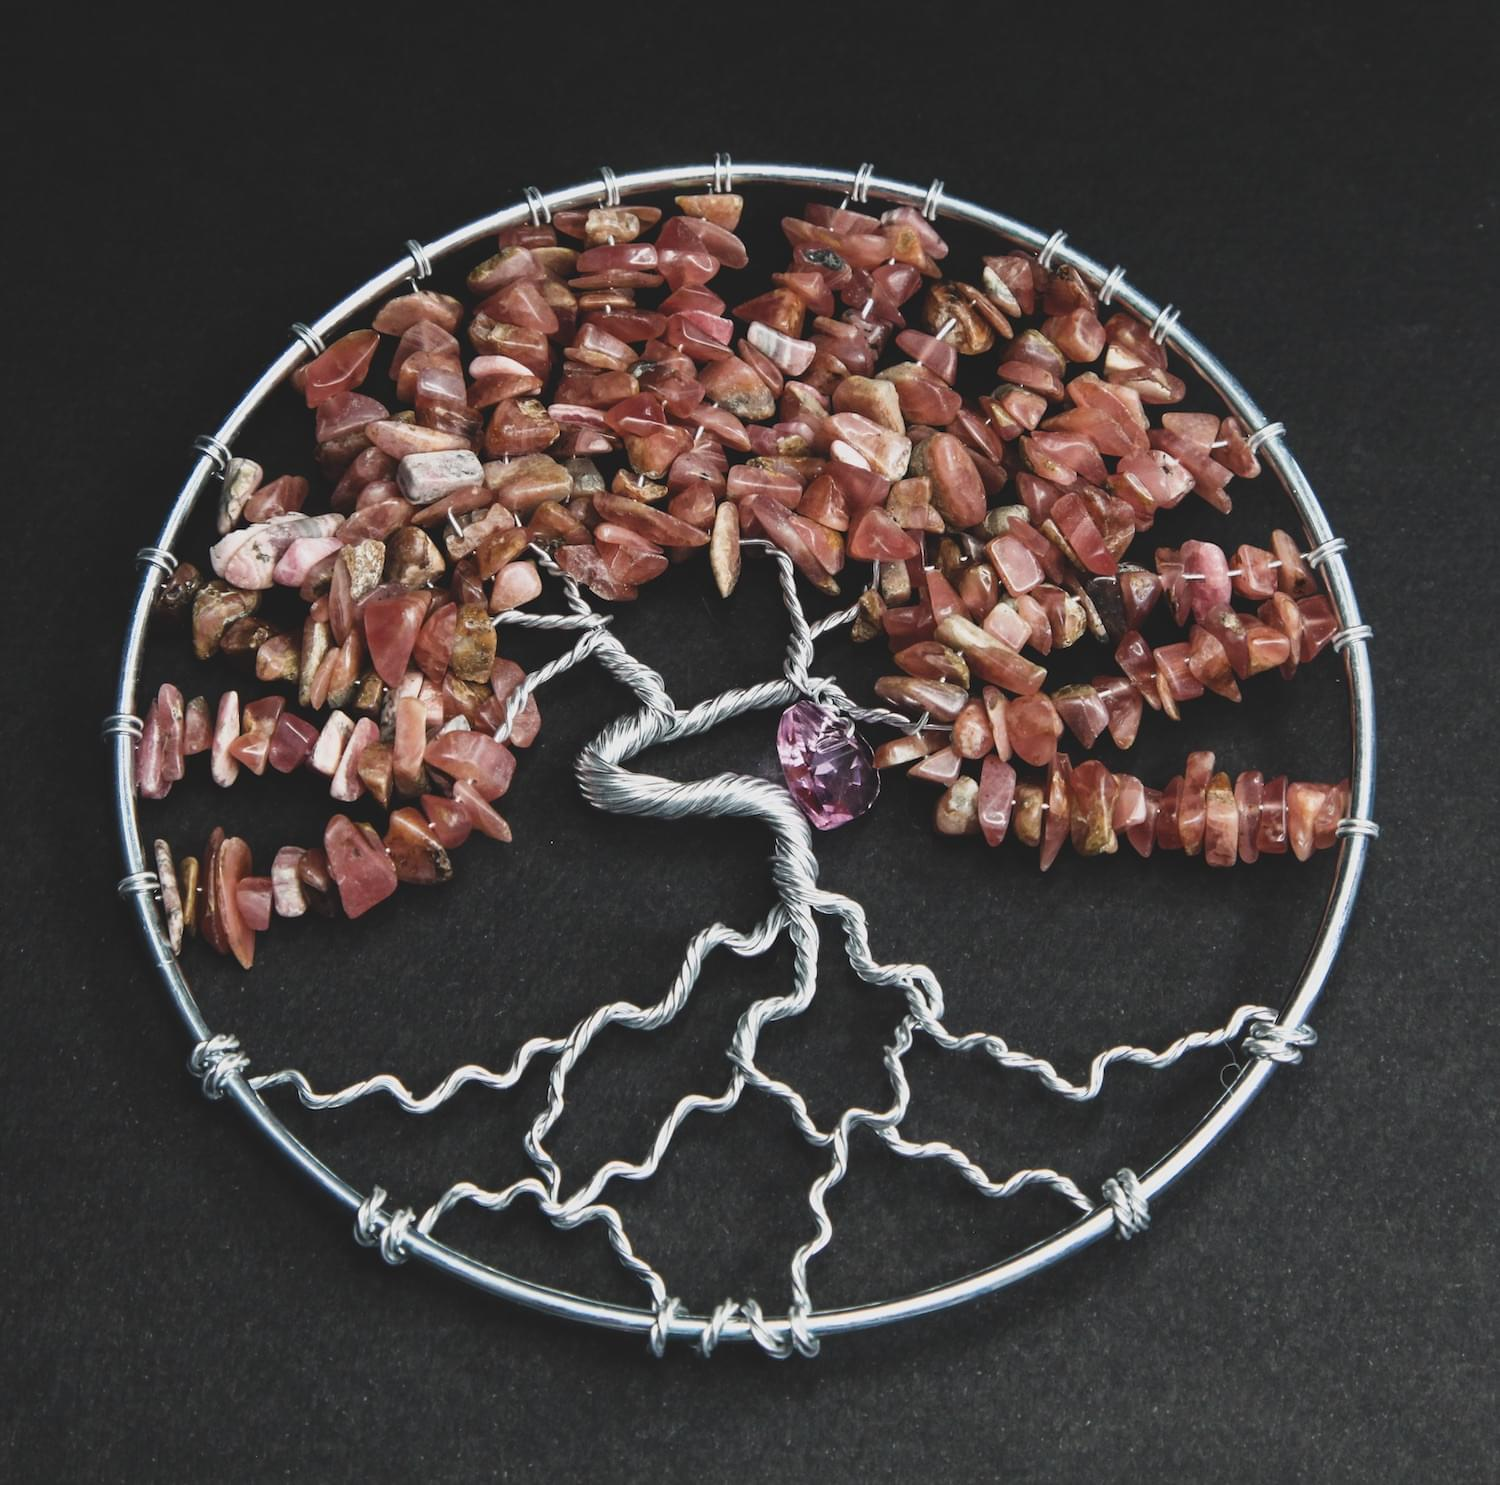 tree_of_life_gemstone_rhodochrosite_01.min